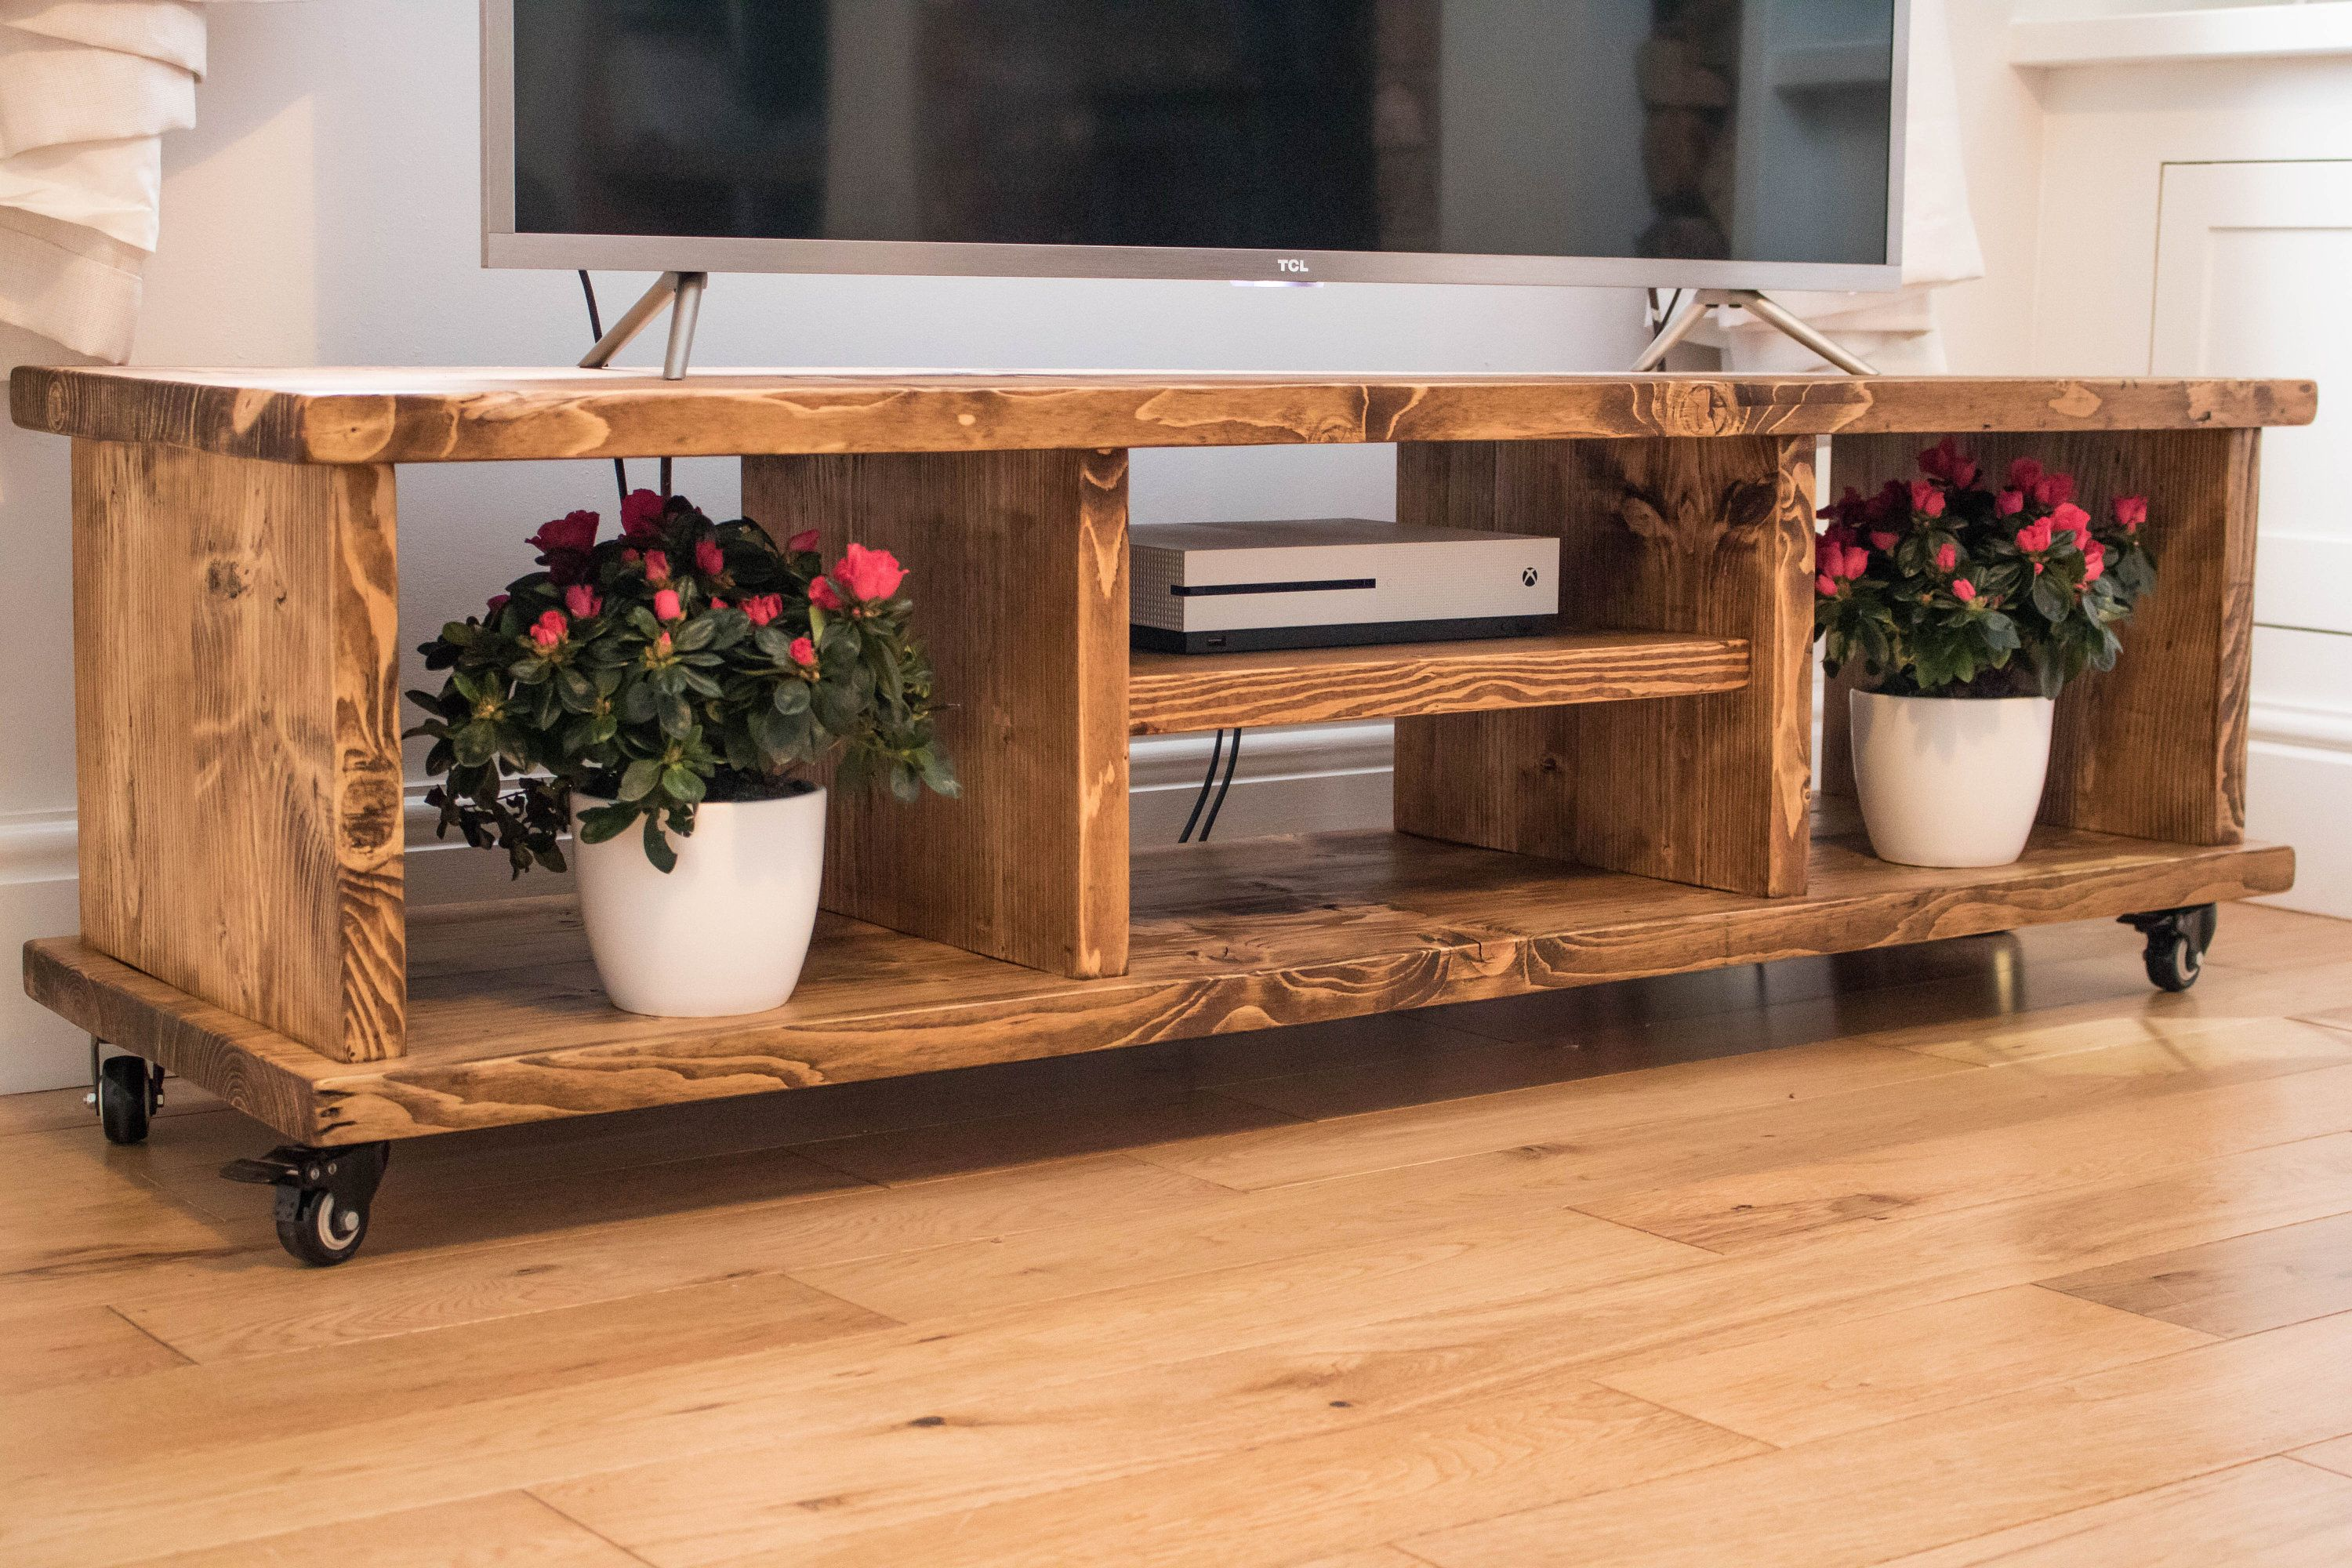 Rustic Tv Stand Handmade Scaffold Board Tv Unit Reclaimed Solid Wood Furniture Rustic Tv Stand Solid Wood Furniture Rustic Furniture Diy